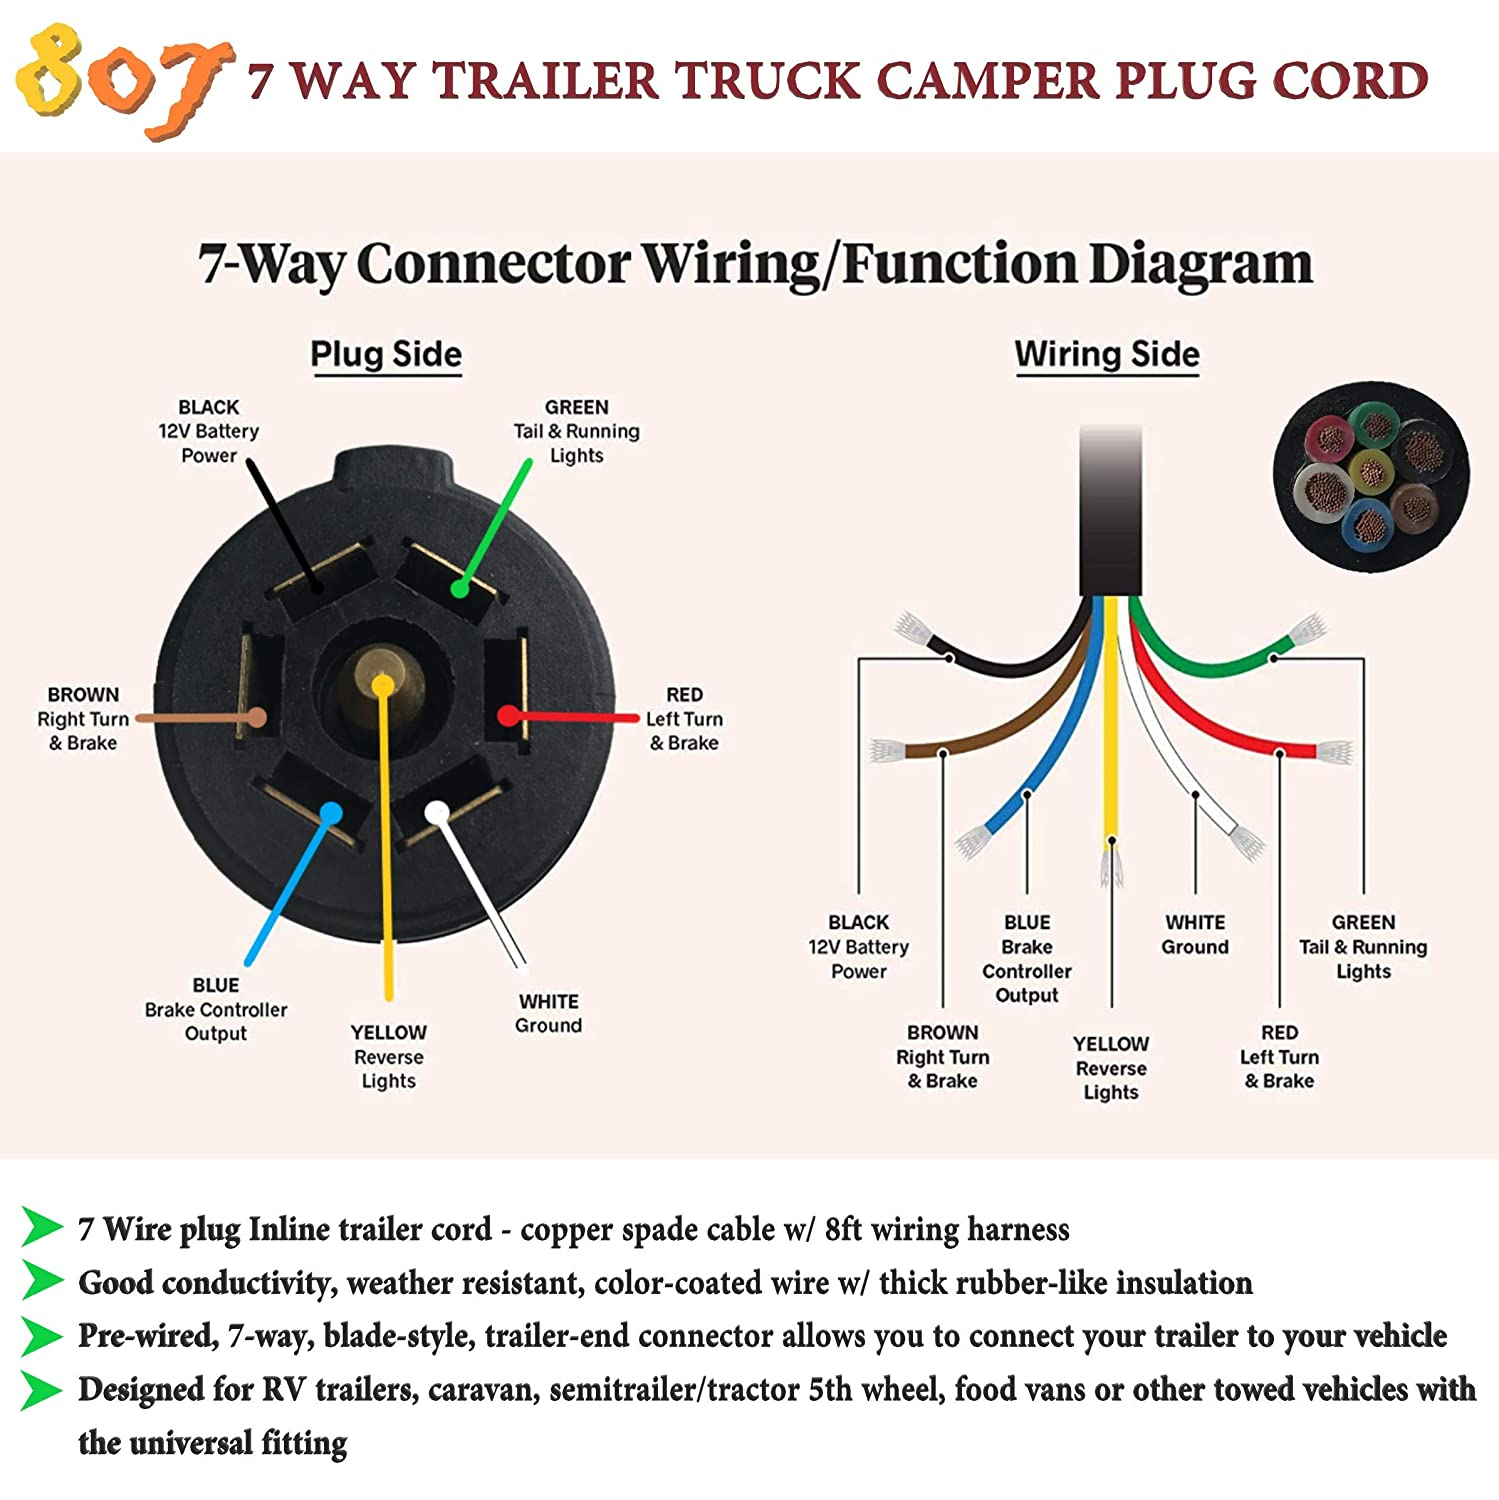 Trailer Wiring Diagram 6 Way from images-na.ssl-images-amazon.com